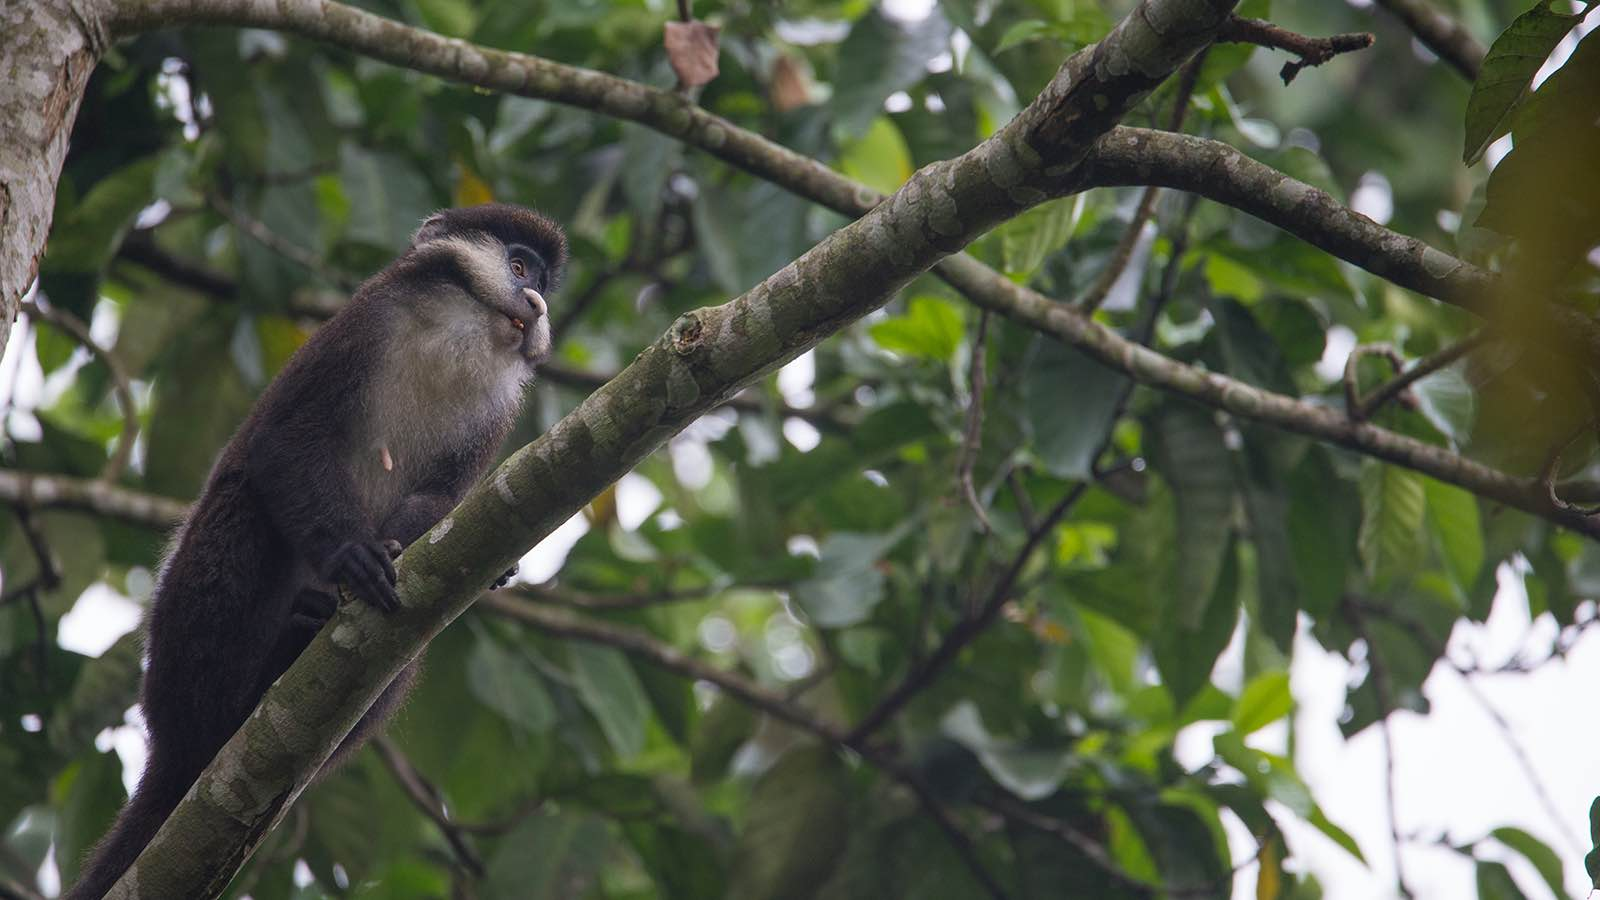 red-tailed monkey foraging in a tree in Kibale Forest